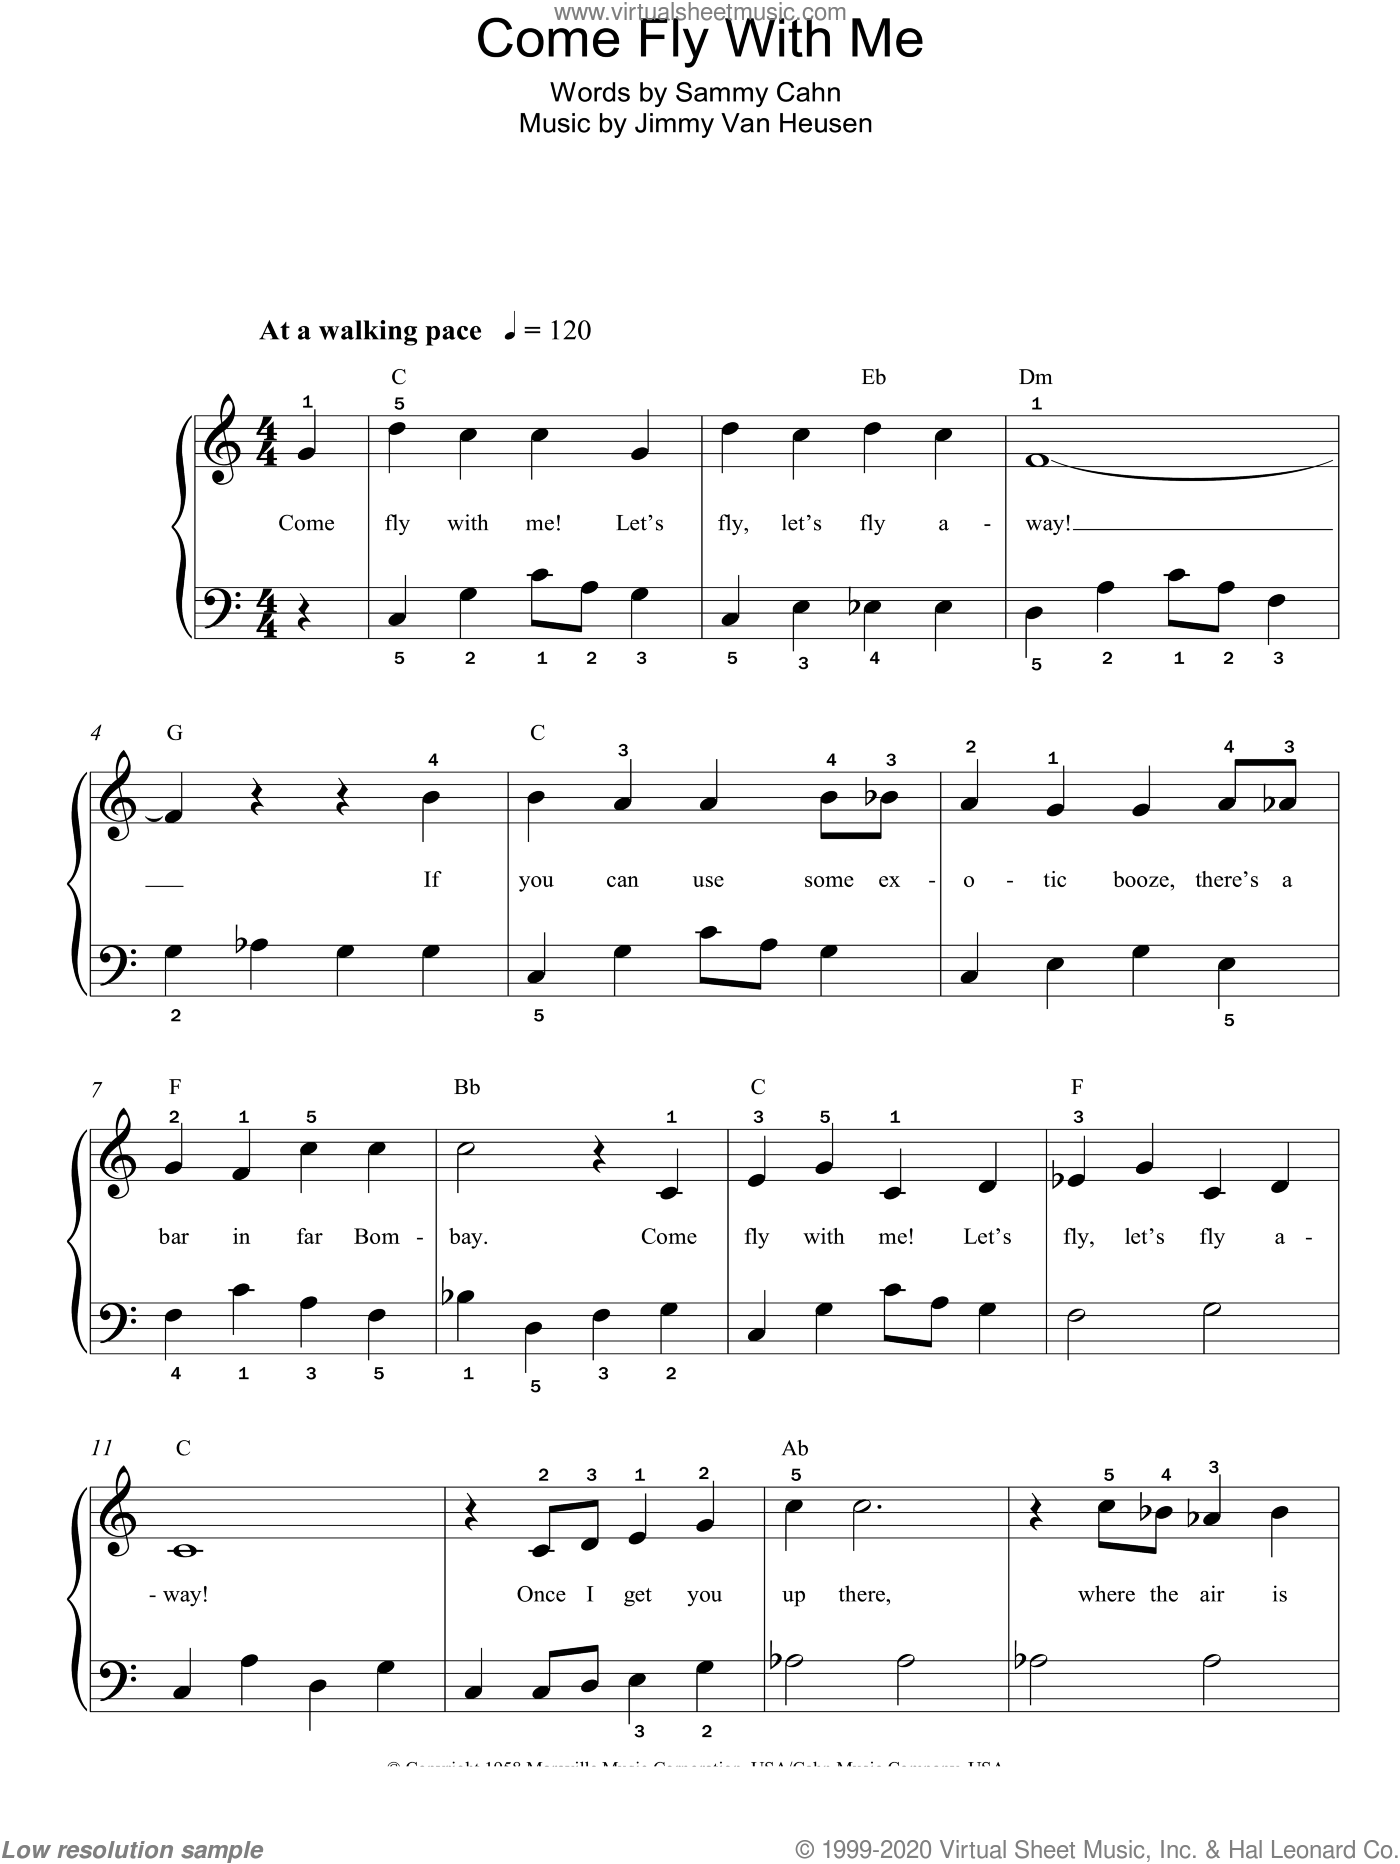 Come Fly With Me, (easy) sheet music for piano solo by Frank Sinatra, Jimmy Van Heusen and Sammy Cahn, easy skill level